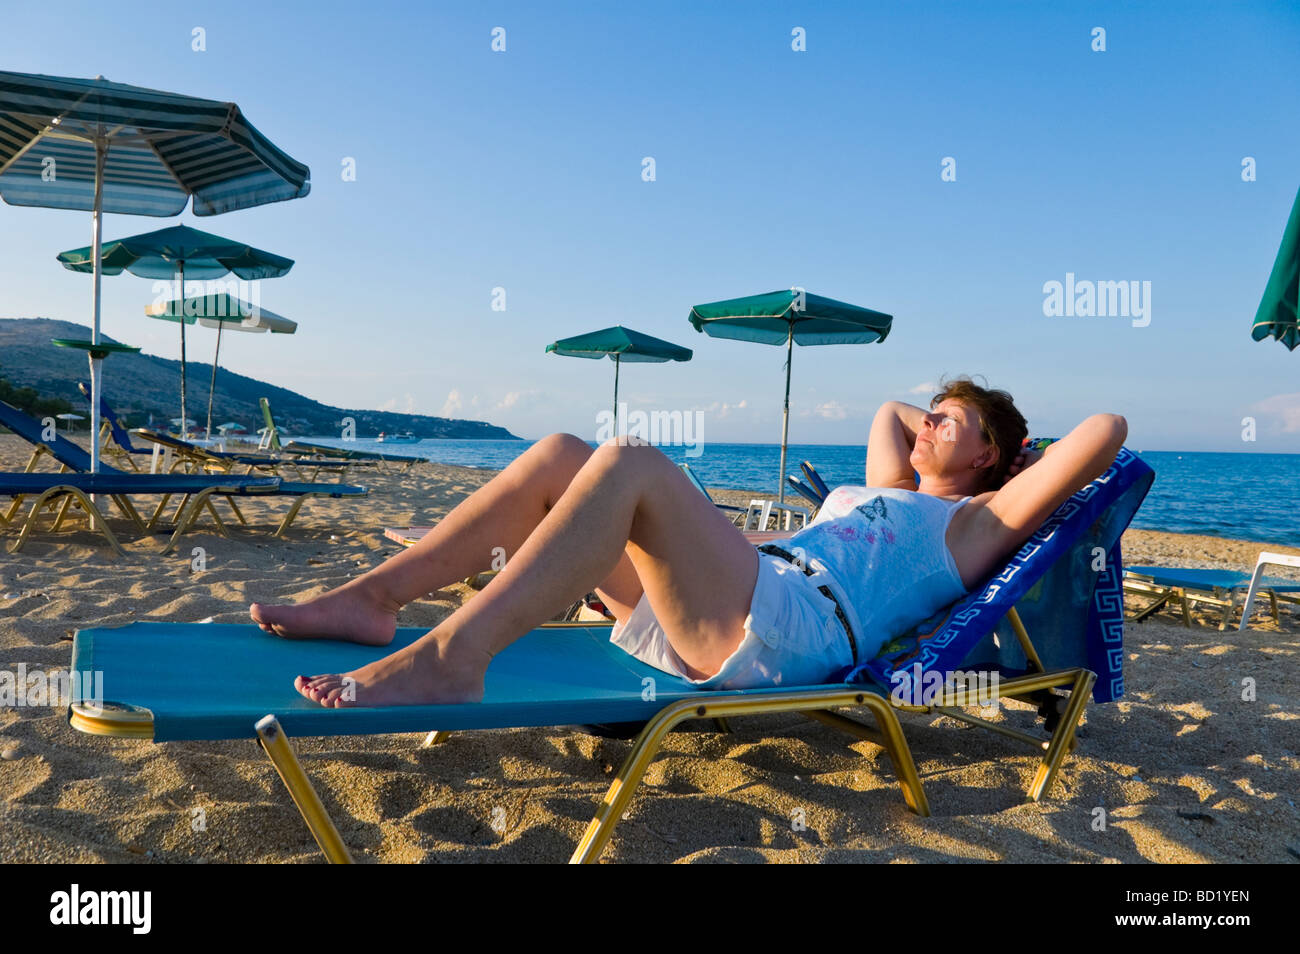 Woman relaxing on sunbed in late afternoon sunshine on beach at Skala on the Greek island of Kefalonia Greece GR Stock Photo